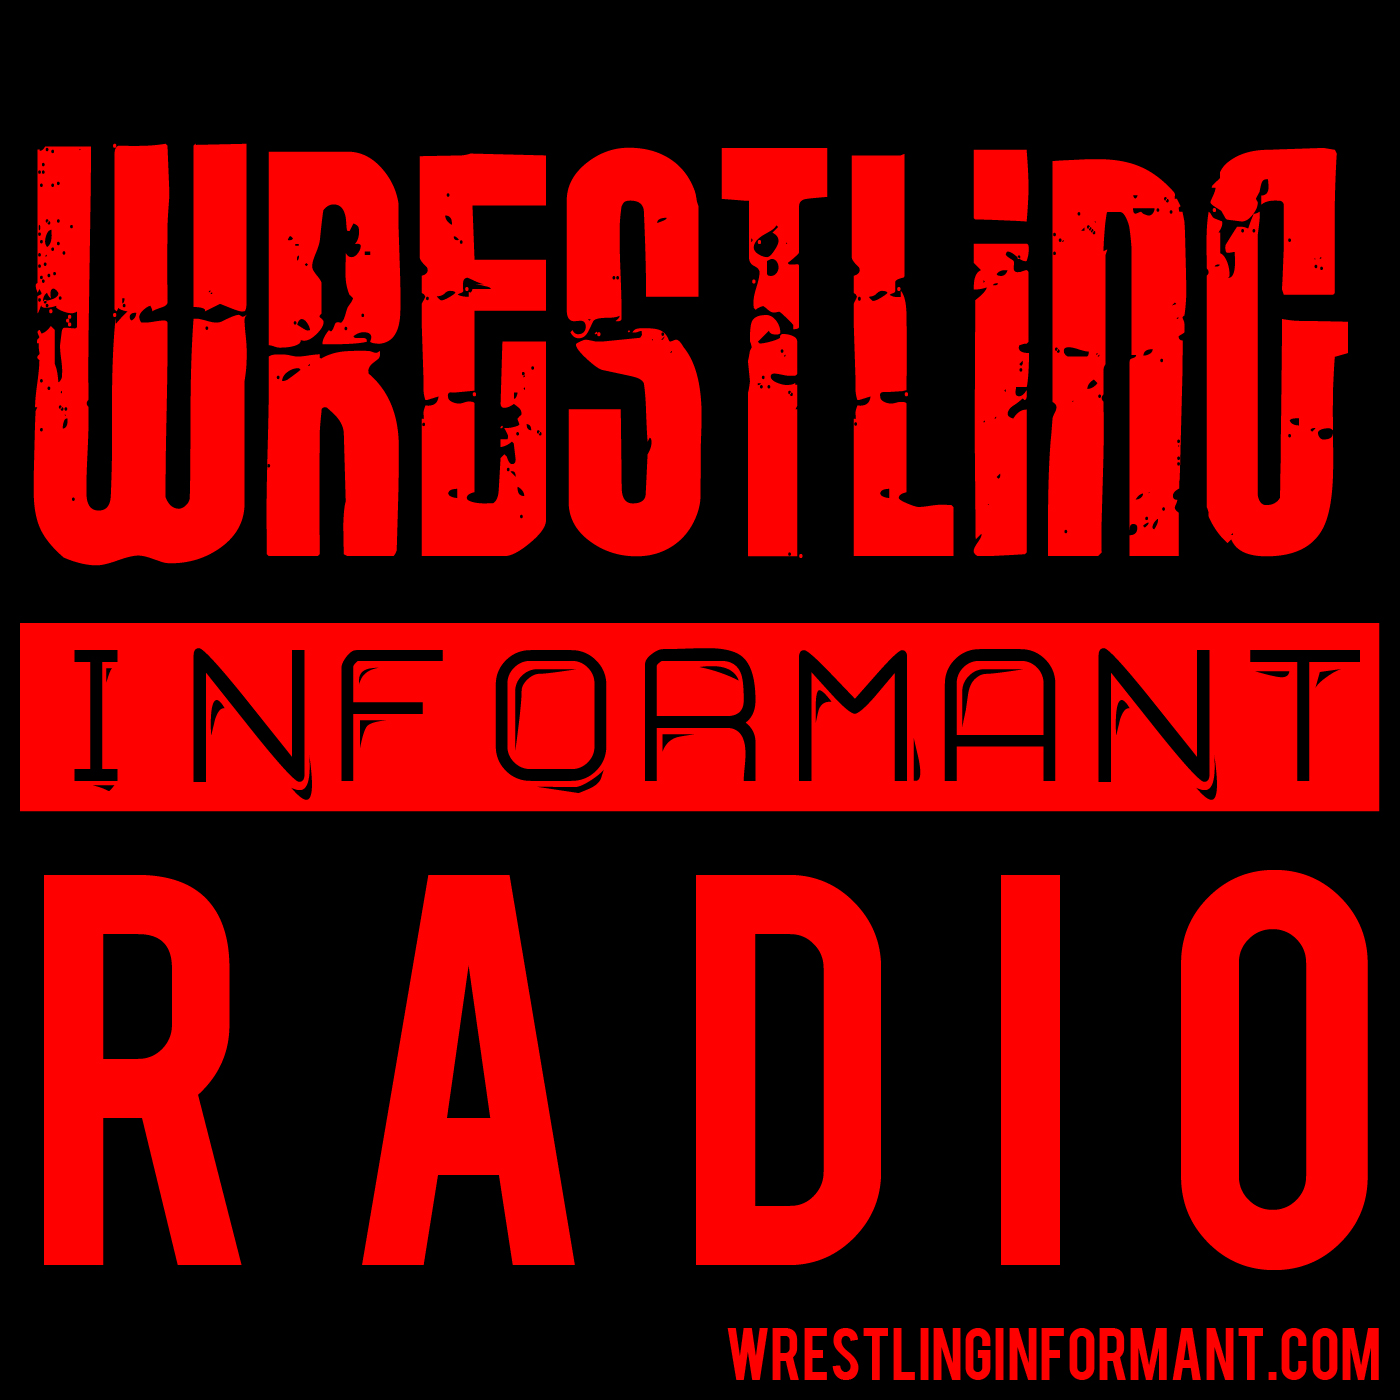 Wrestling Informant Radio